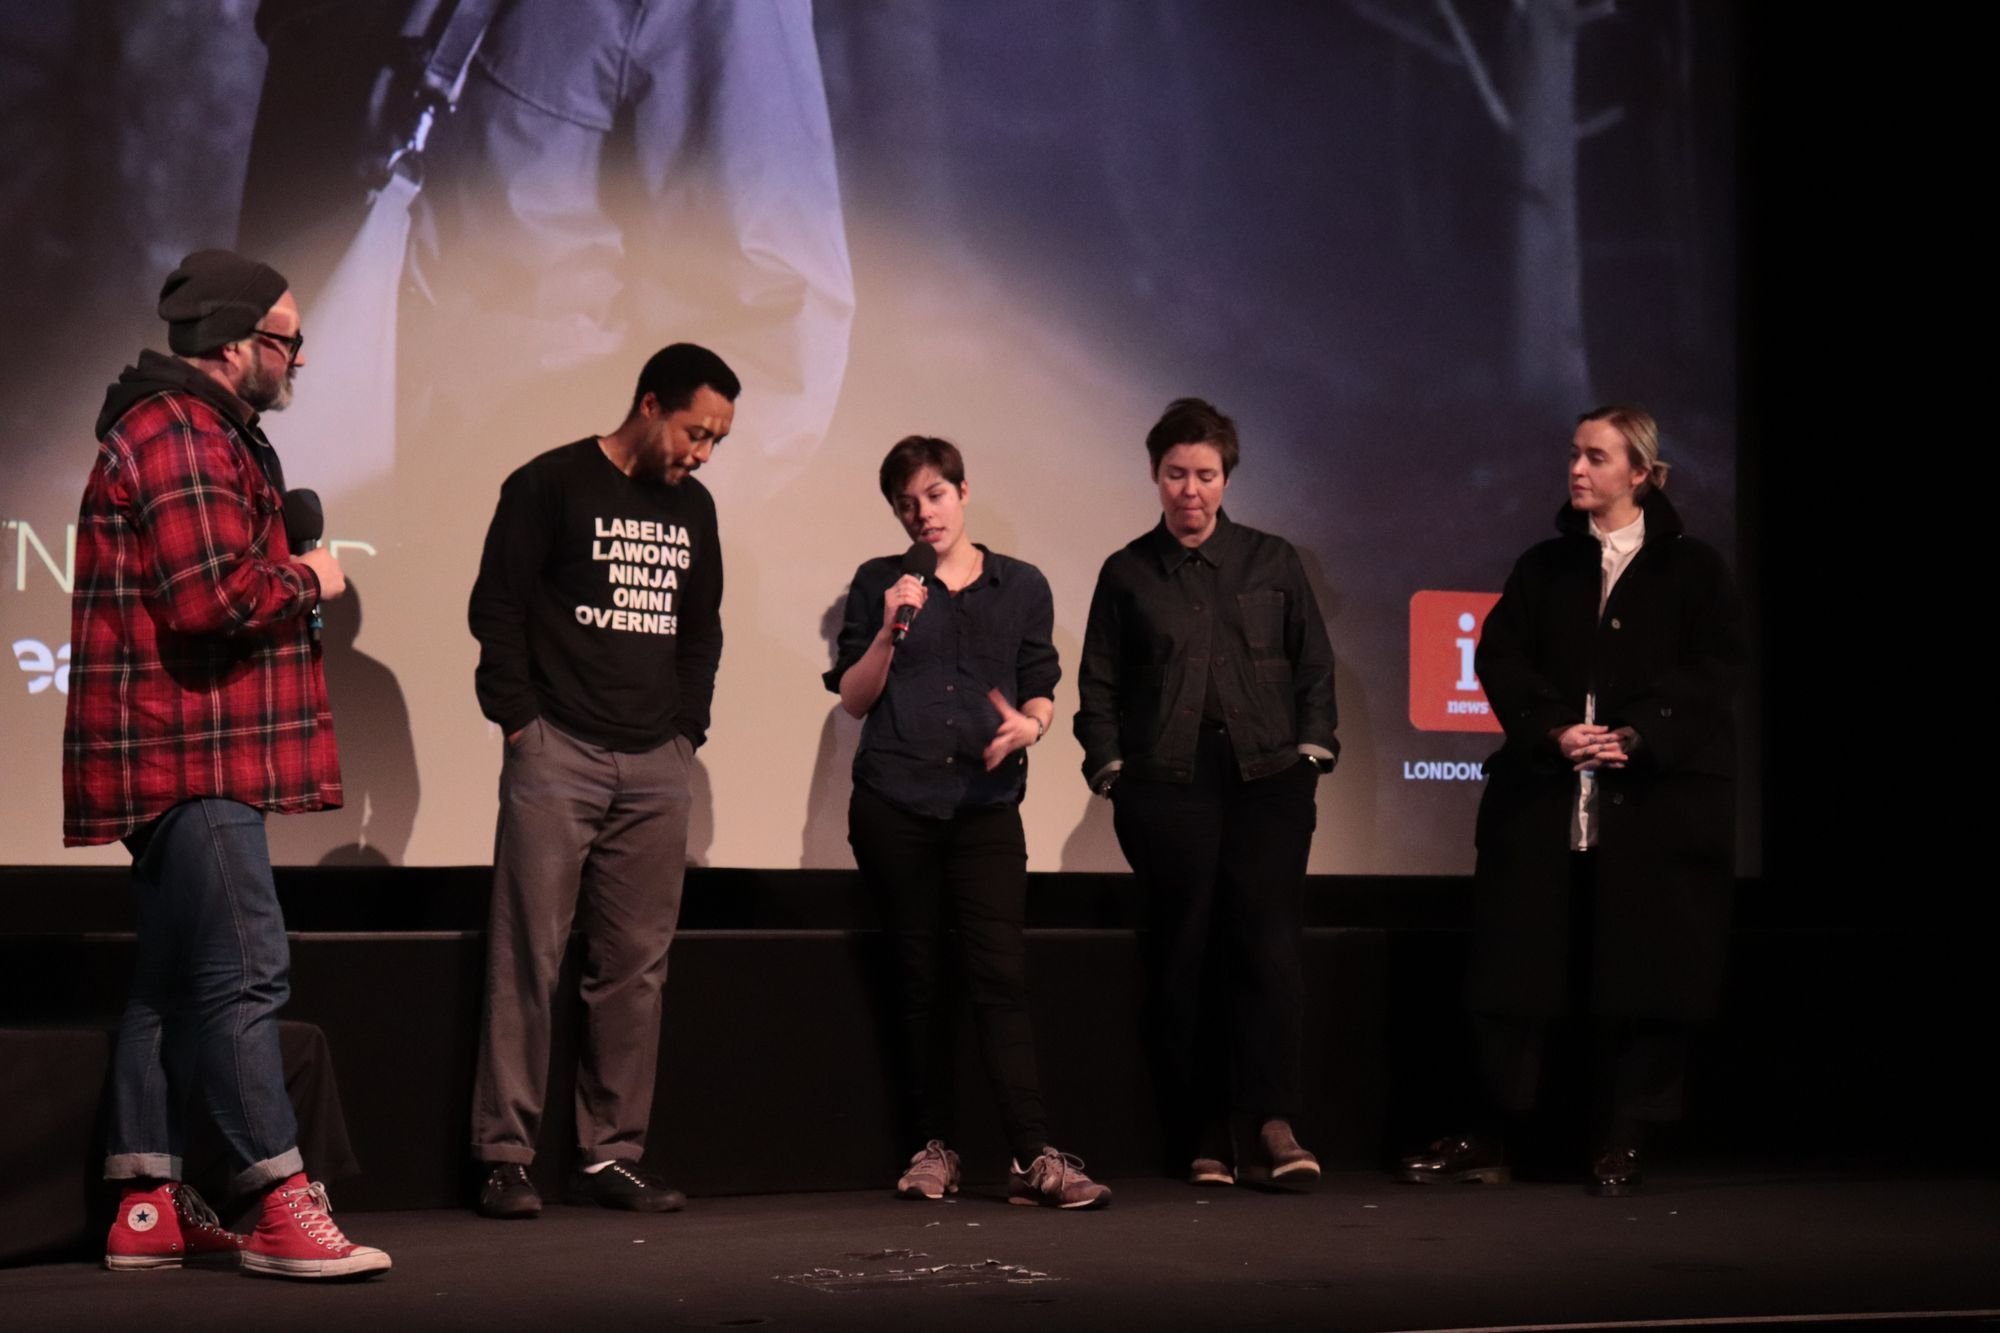 artistic director philip ilson at london short film festival in london on stage panel talk